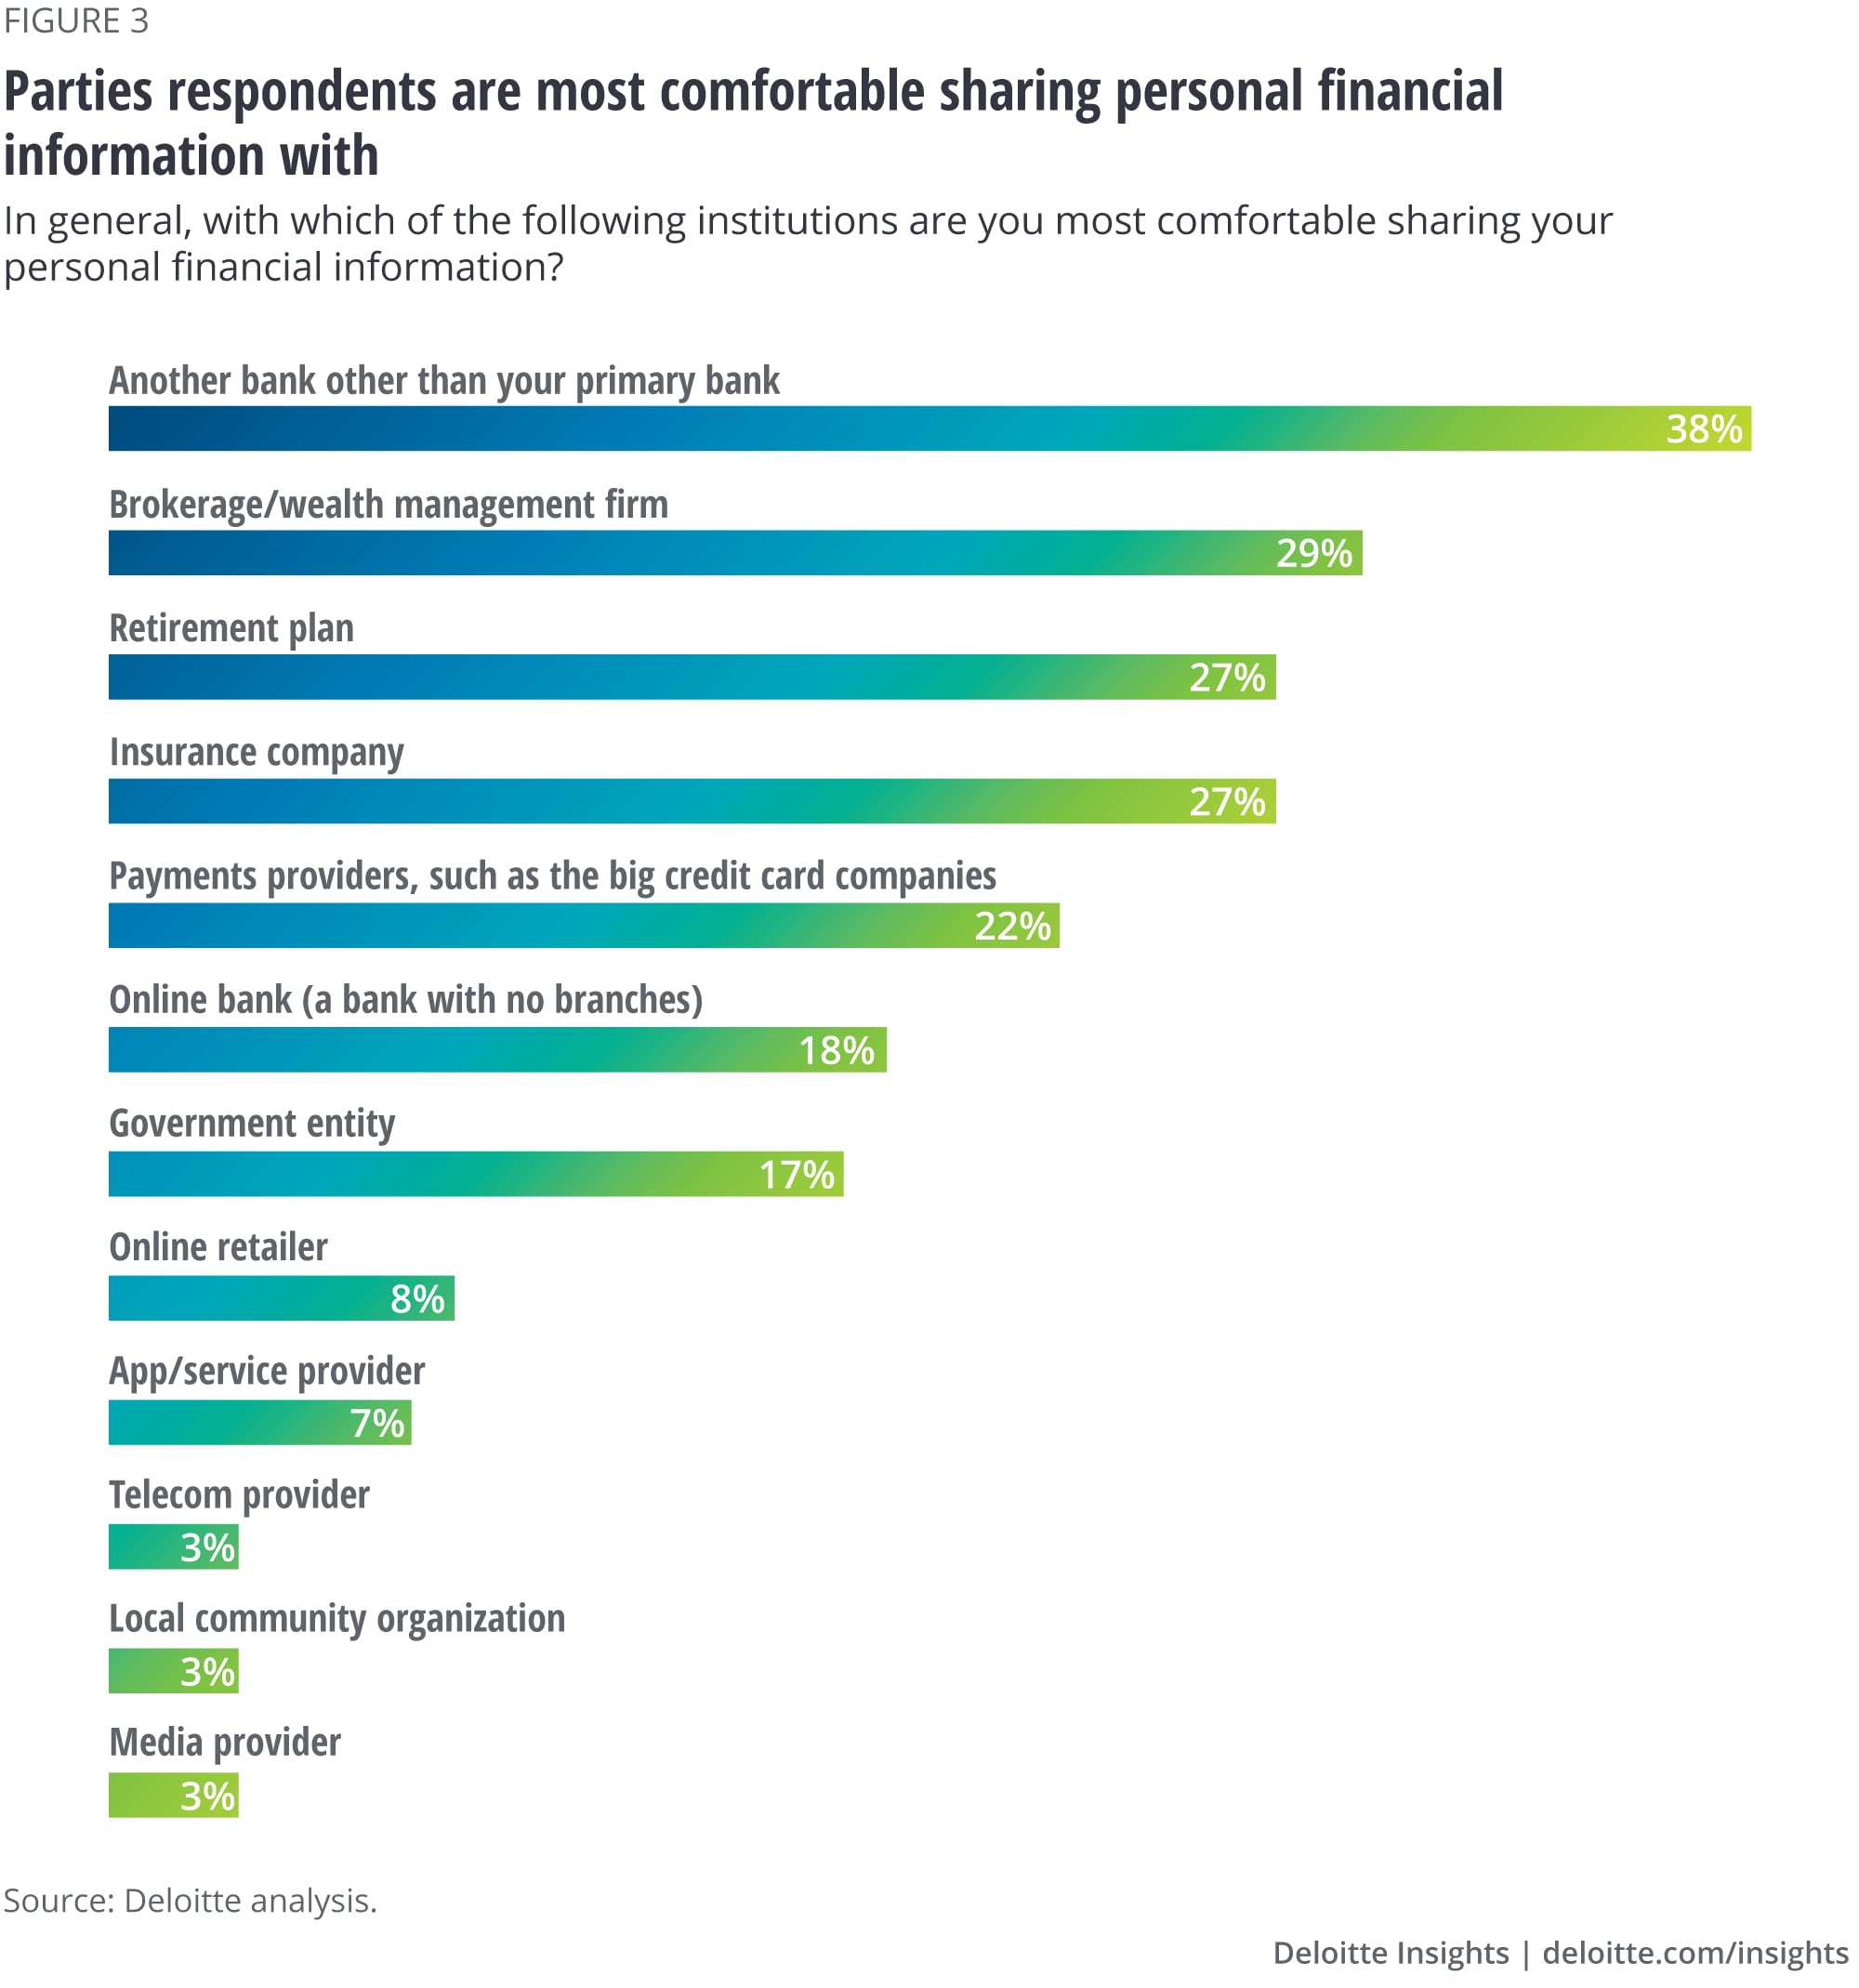 Parties respondents are most comfortable sharing personal financial information with